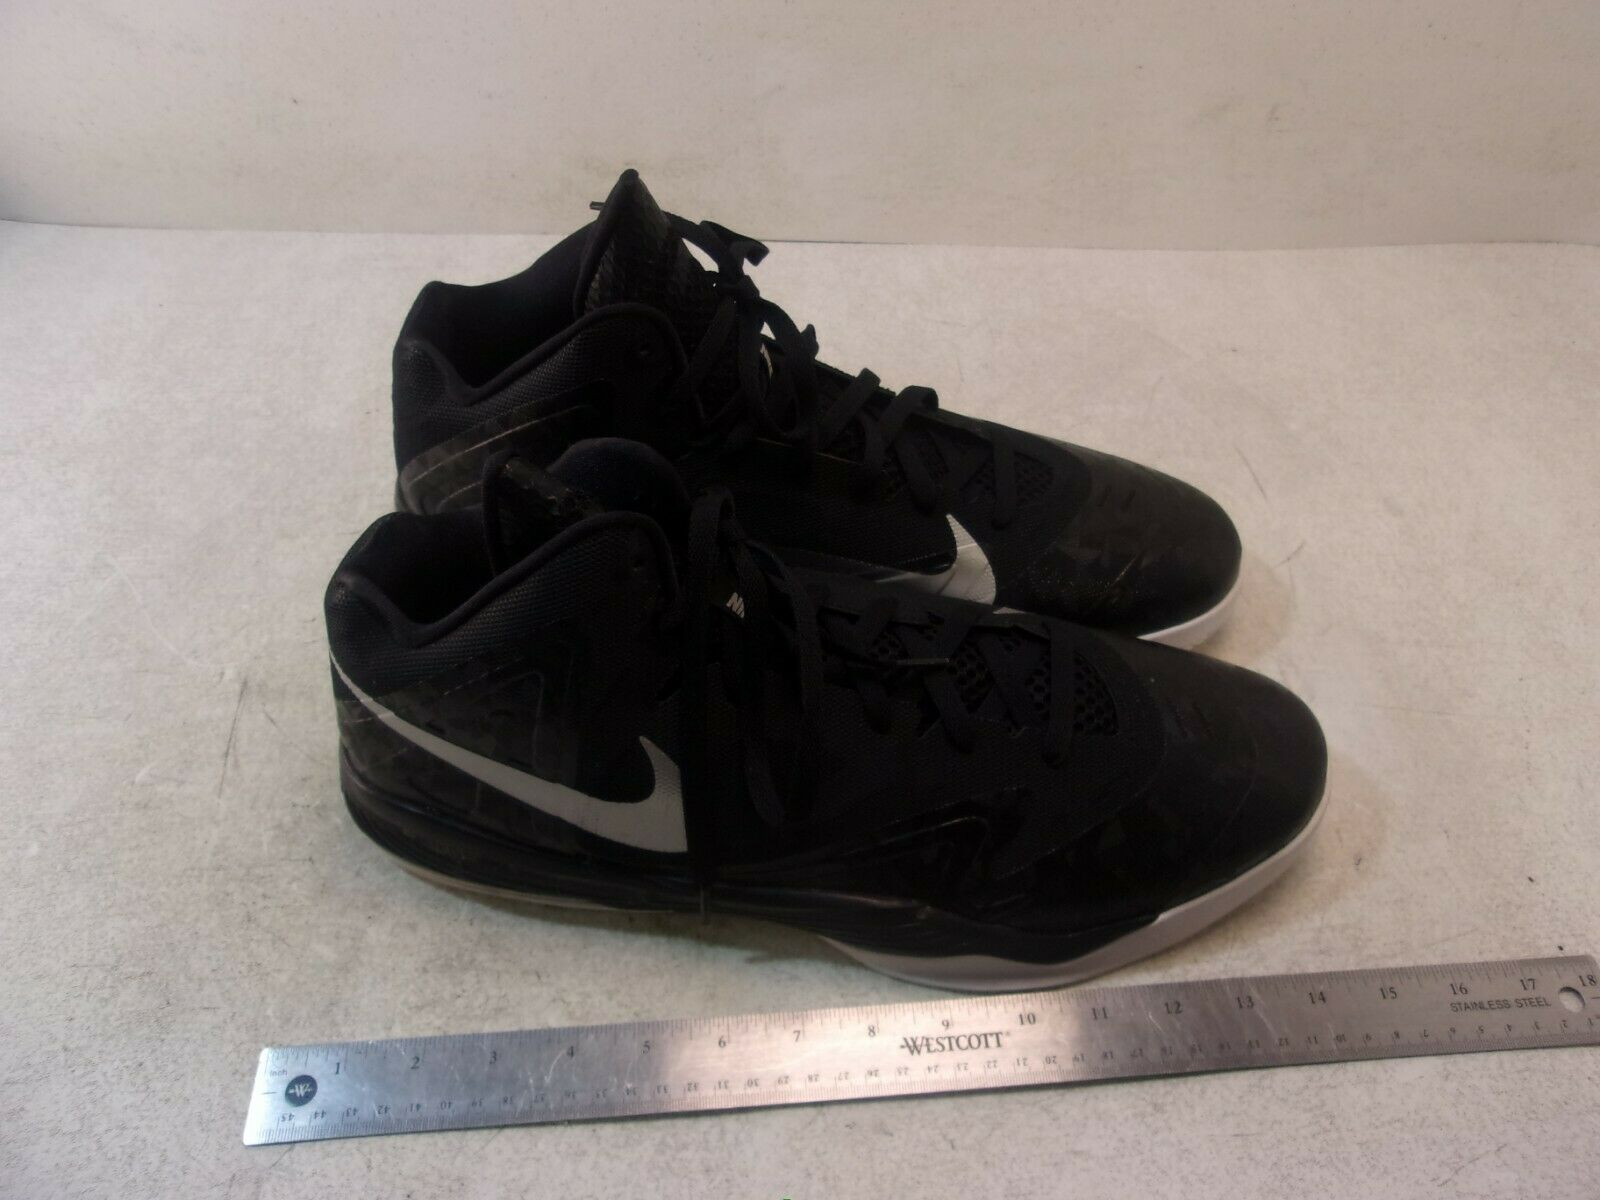 EXCELLENT NIKE AIR MAX PREMIERE BASKETBALL SHOES SIZE 17 689567-001